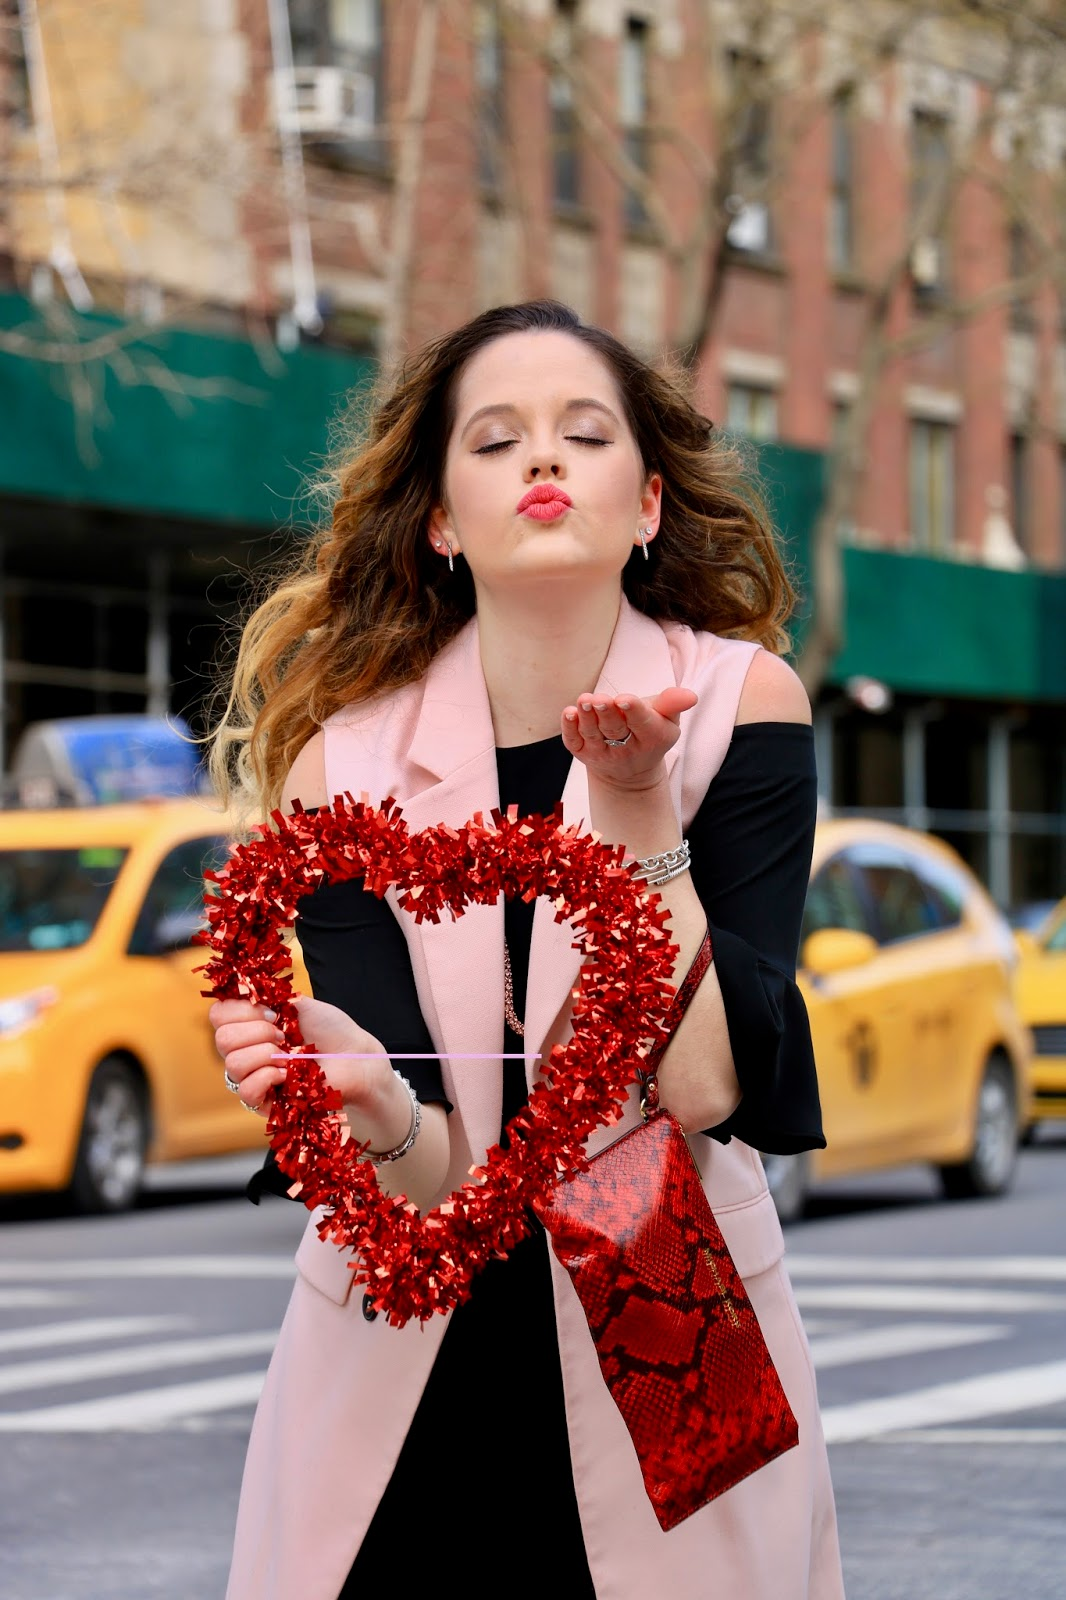 Nyc fashion blogger Kathleen Harper's Valentine's Day makeup ideas